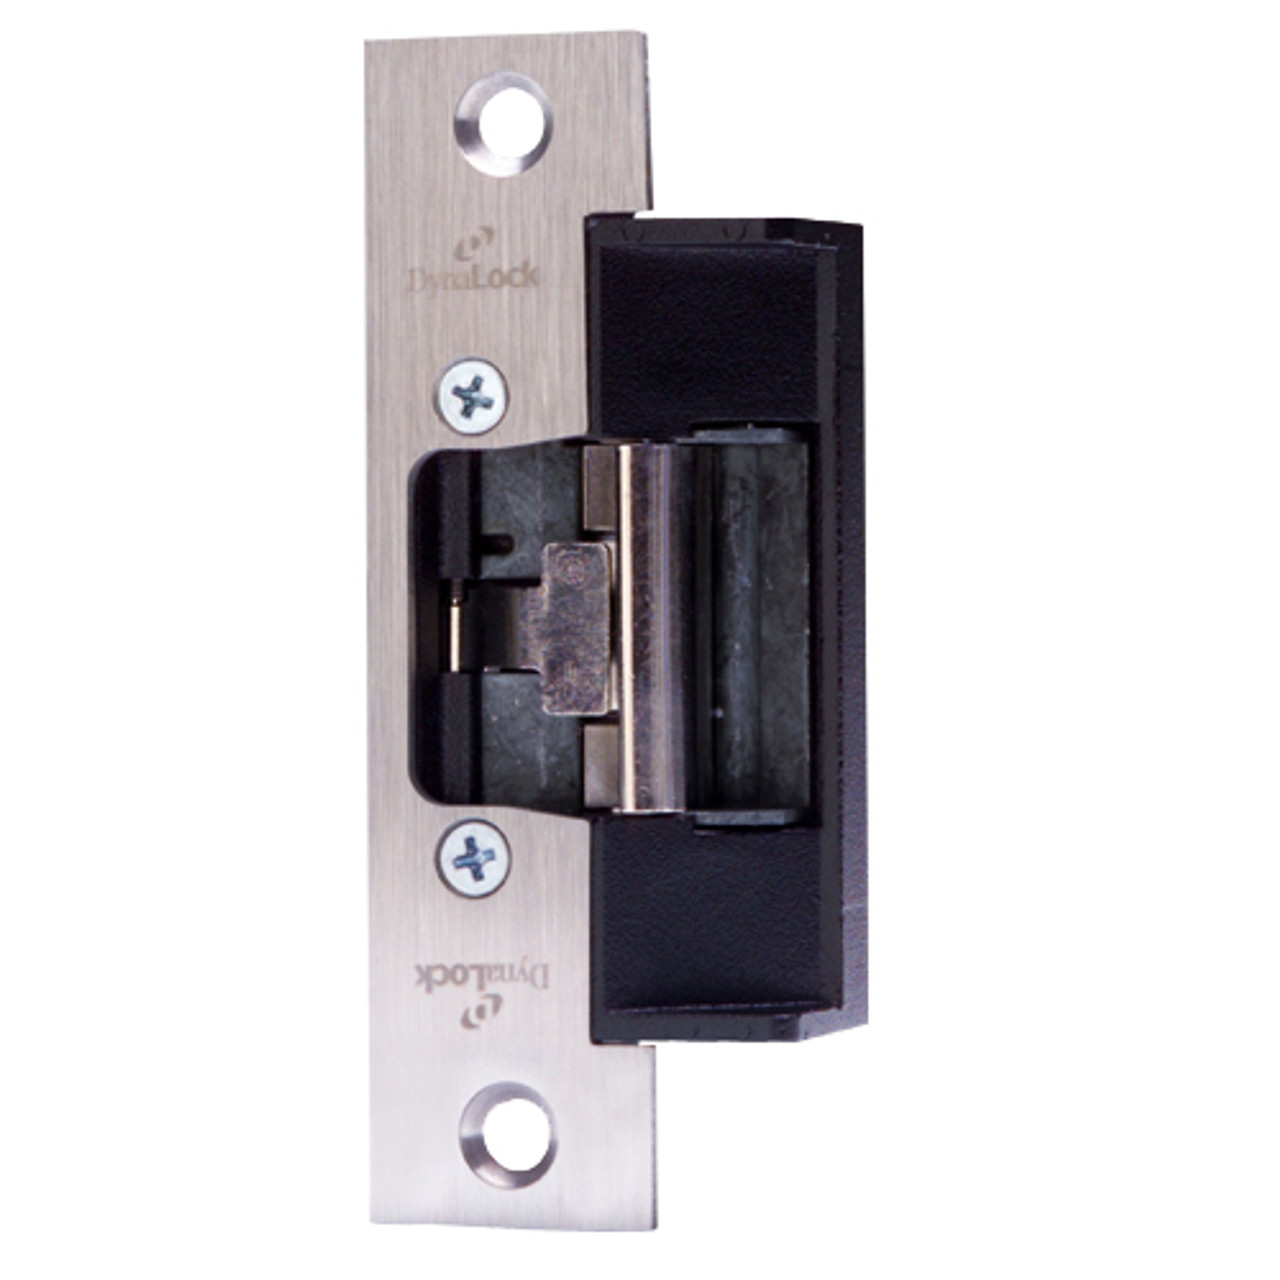 1614S-US32 DynaLock 1600 Series Electric Strike for Standard Profile in Bright Stainless Steel